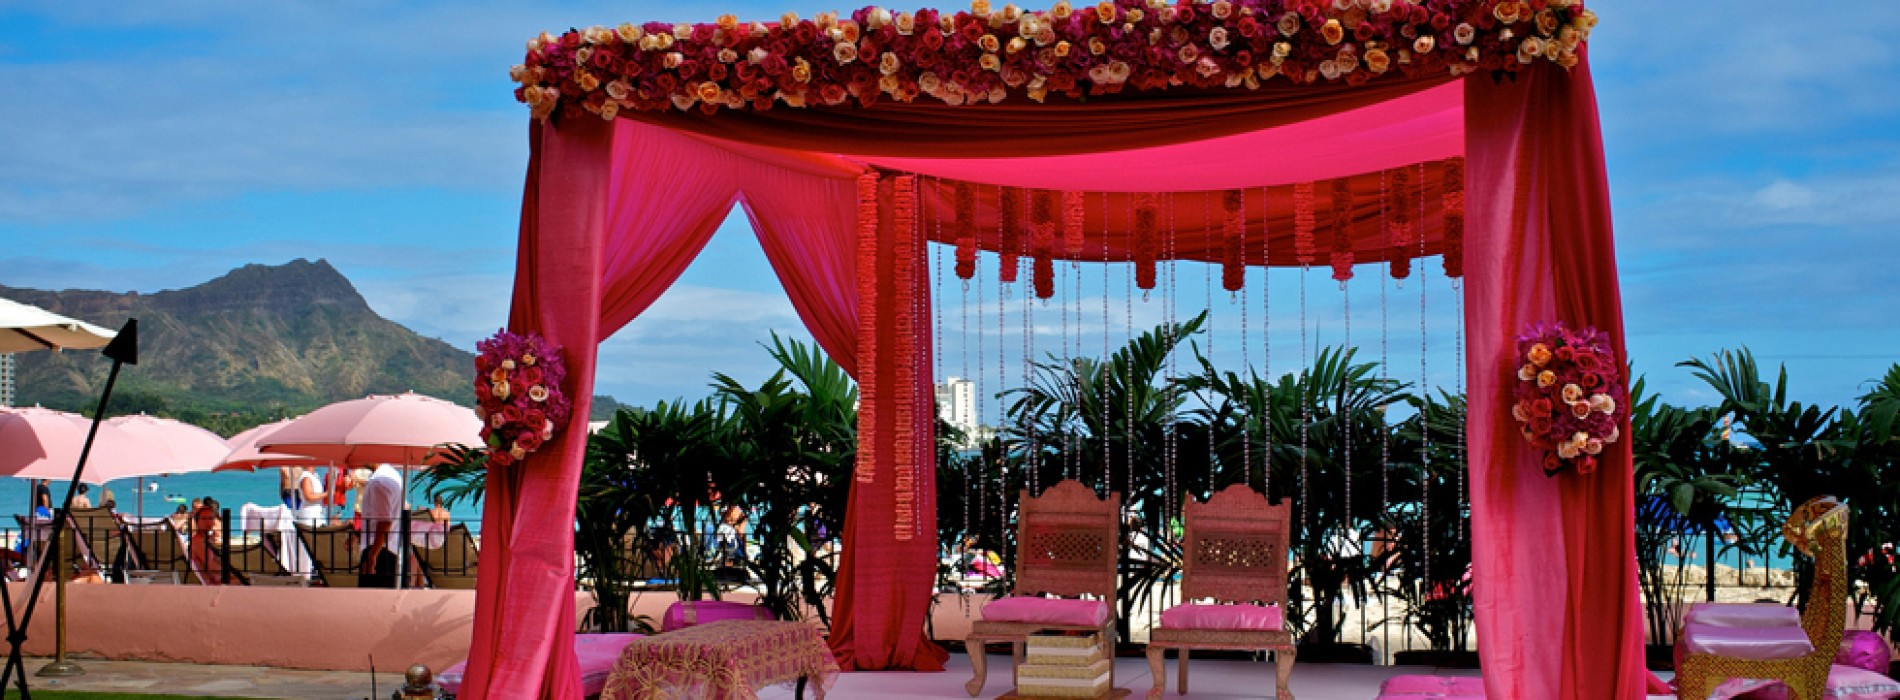 NEW FADS IN THE DESTINATION WEDDING MARKET TO WATCH OUT FOR